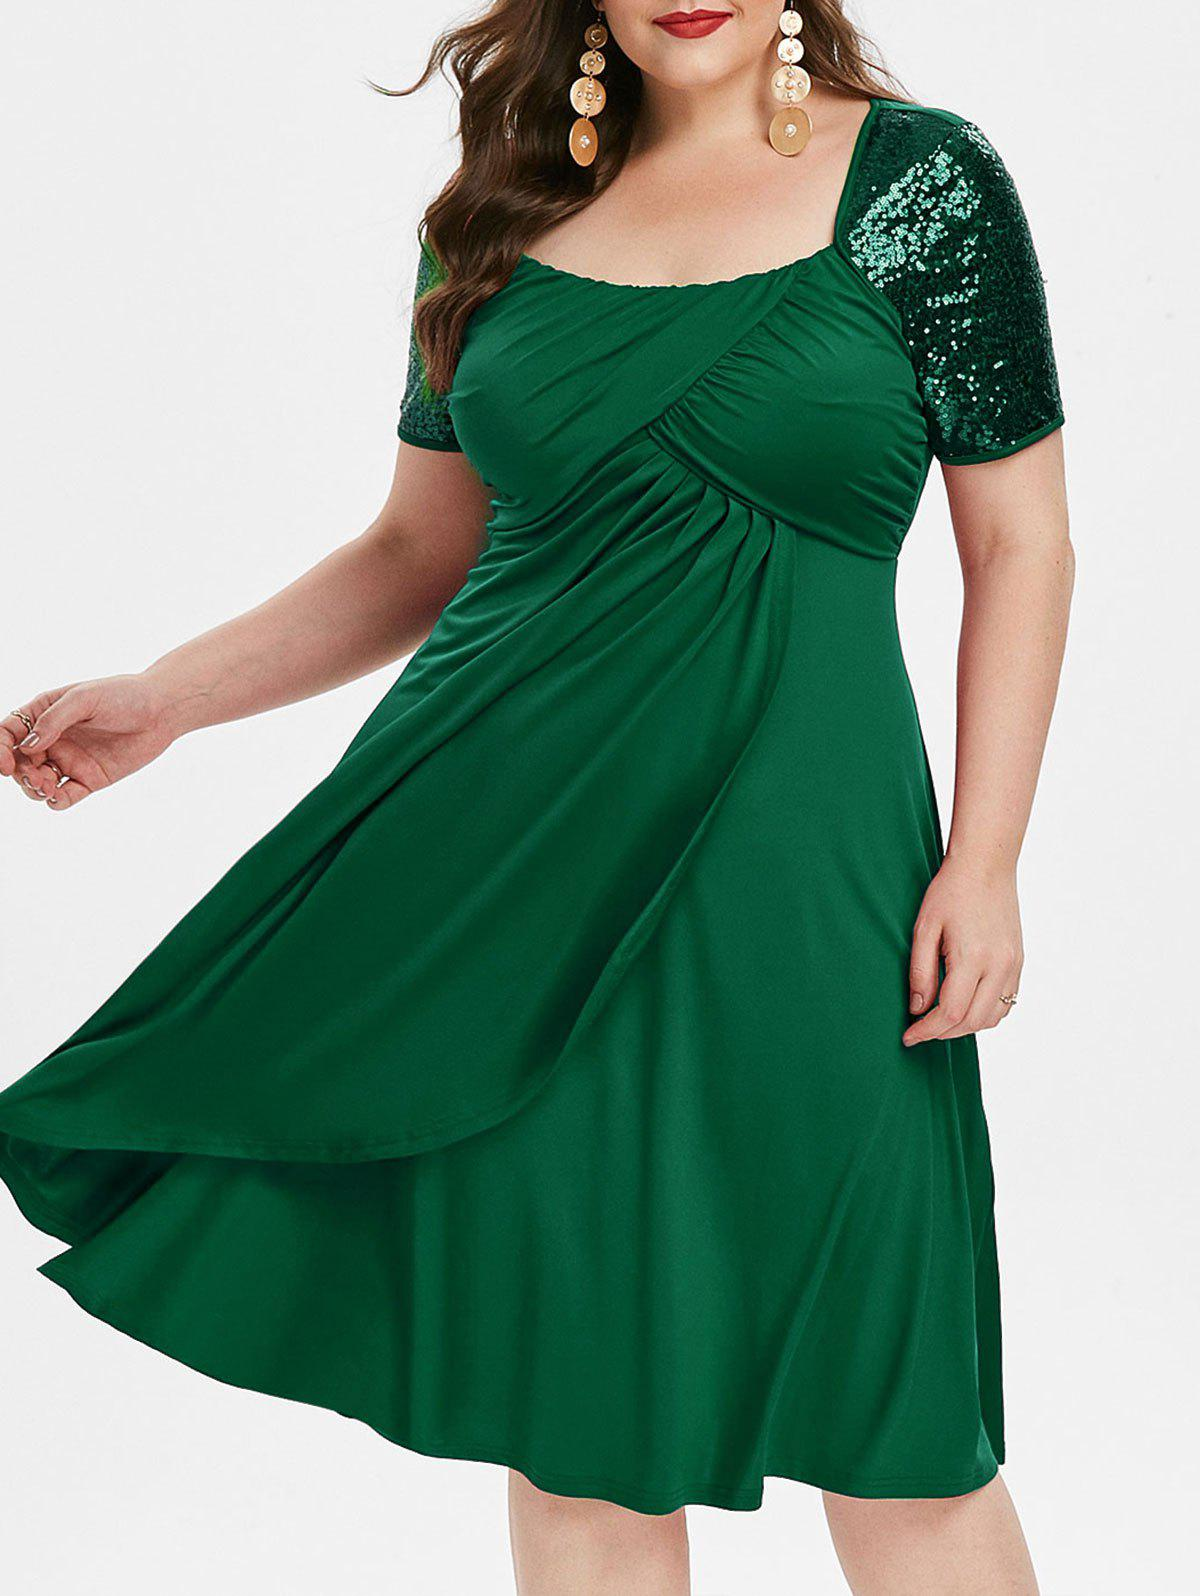 Taille Plus col carré Fit et Flare Robe solide - Vert Mer Moyen 4X